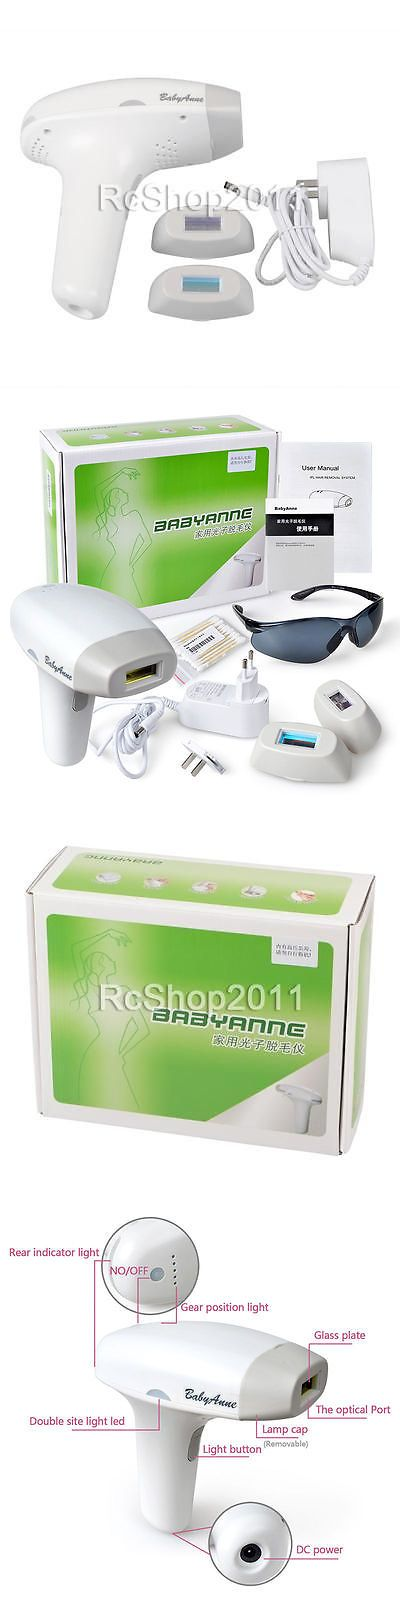 Laser Hair Removal and IPL: 3 In 1 Ipl Laser Permanent Hair Removal Machine Face Body White Skinandacne-Repair BUY IT NOW ONLY: $105.0